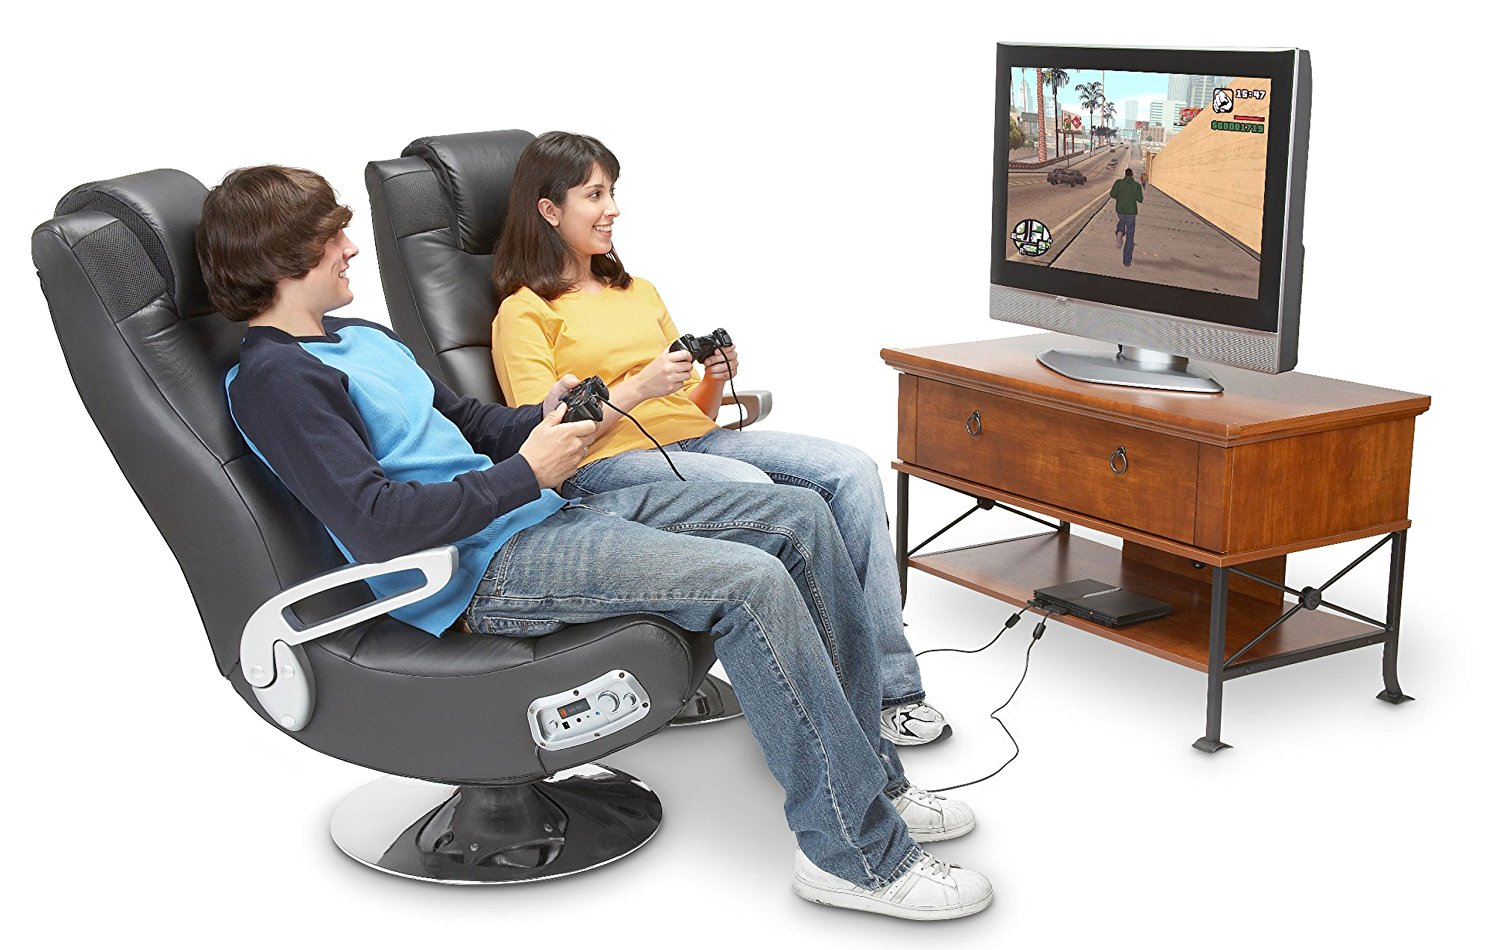 Cheap Gaming Chair For Pc Under 200 In